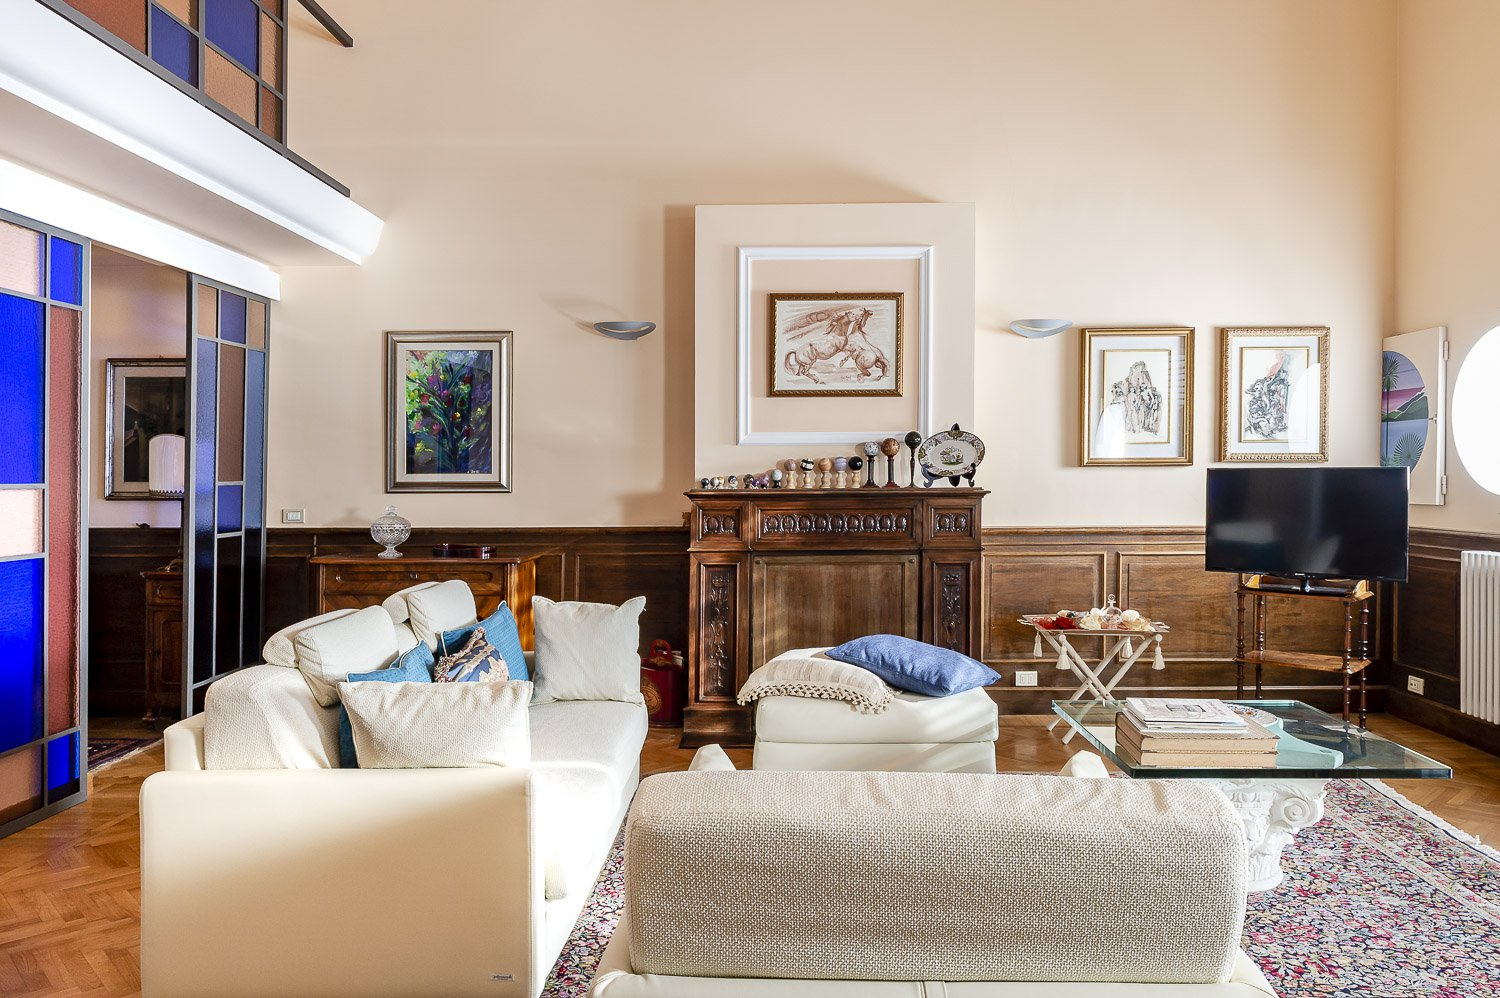 Apartment for sale in historic villa in Baveno - elegant sitting room